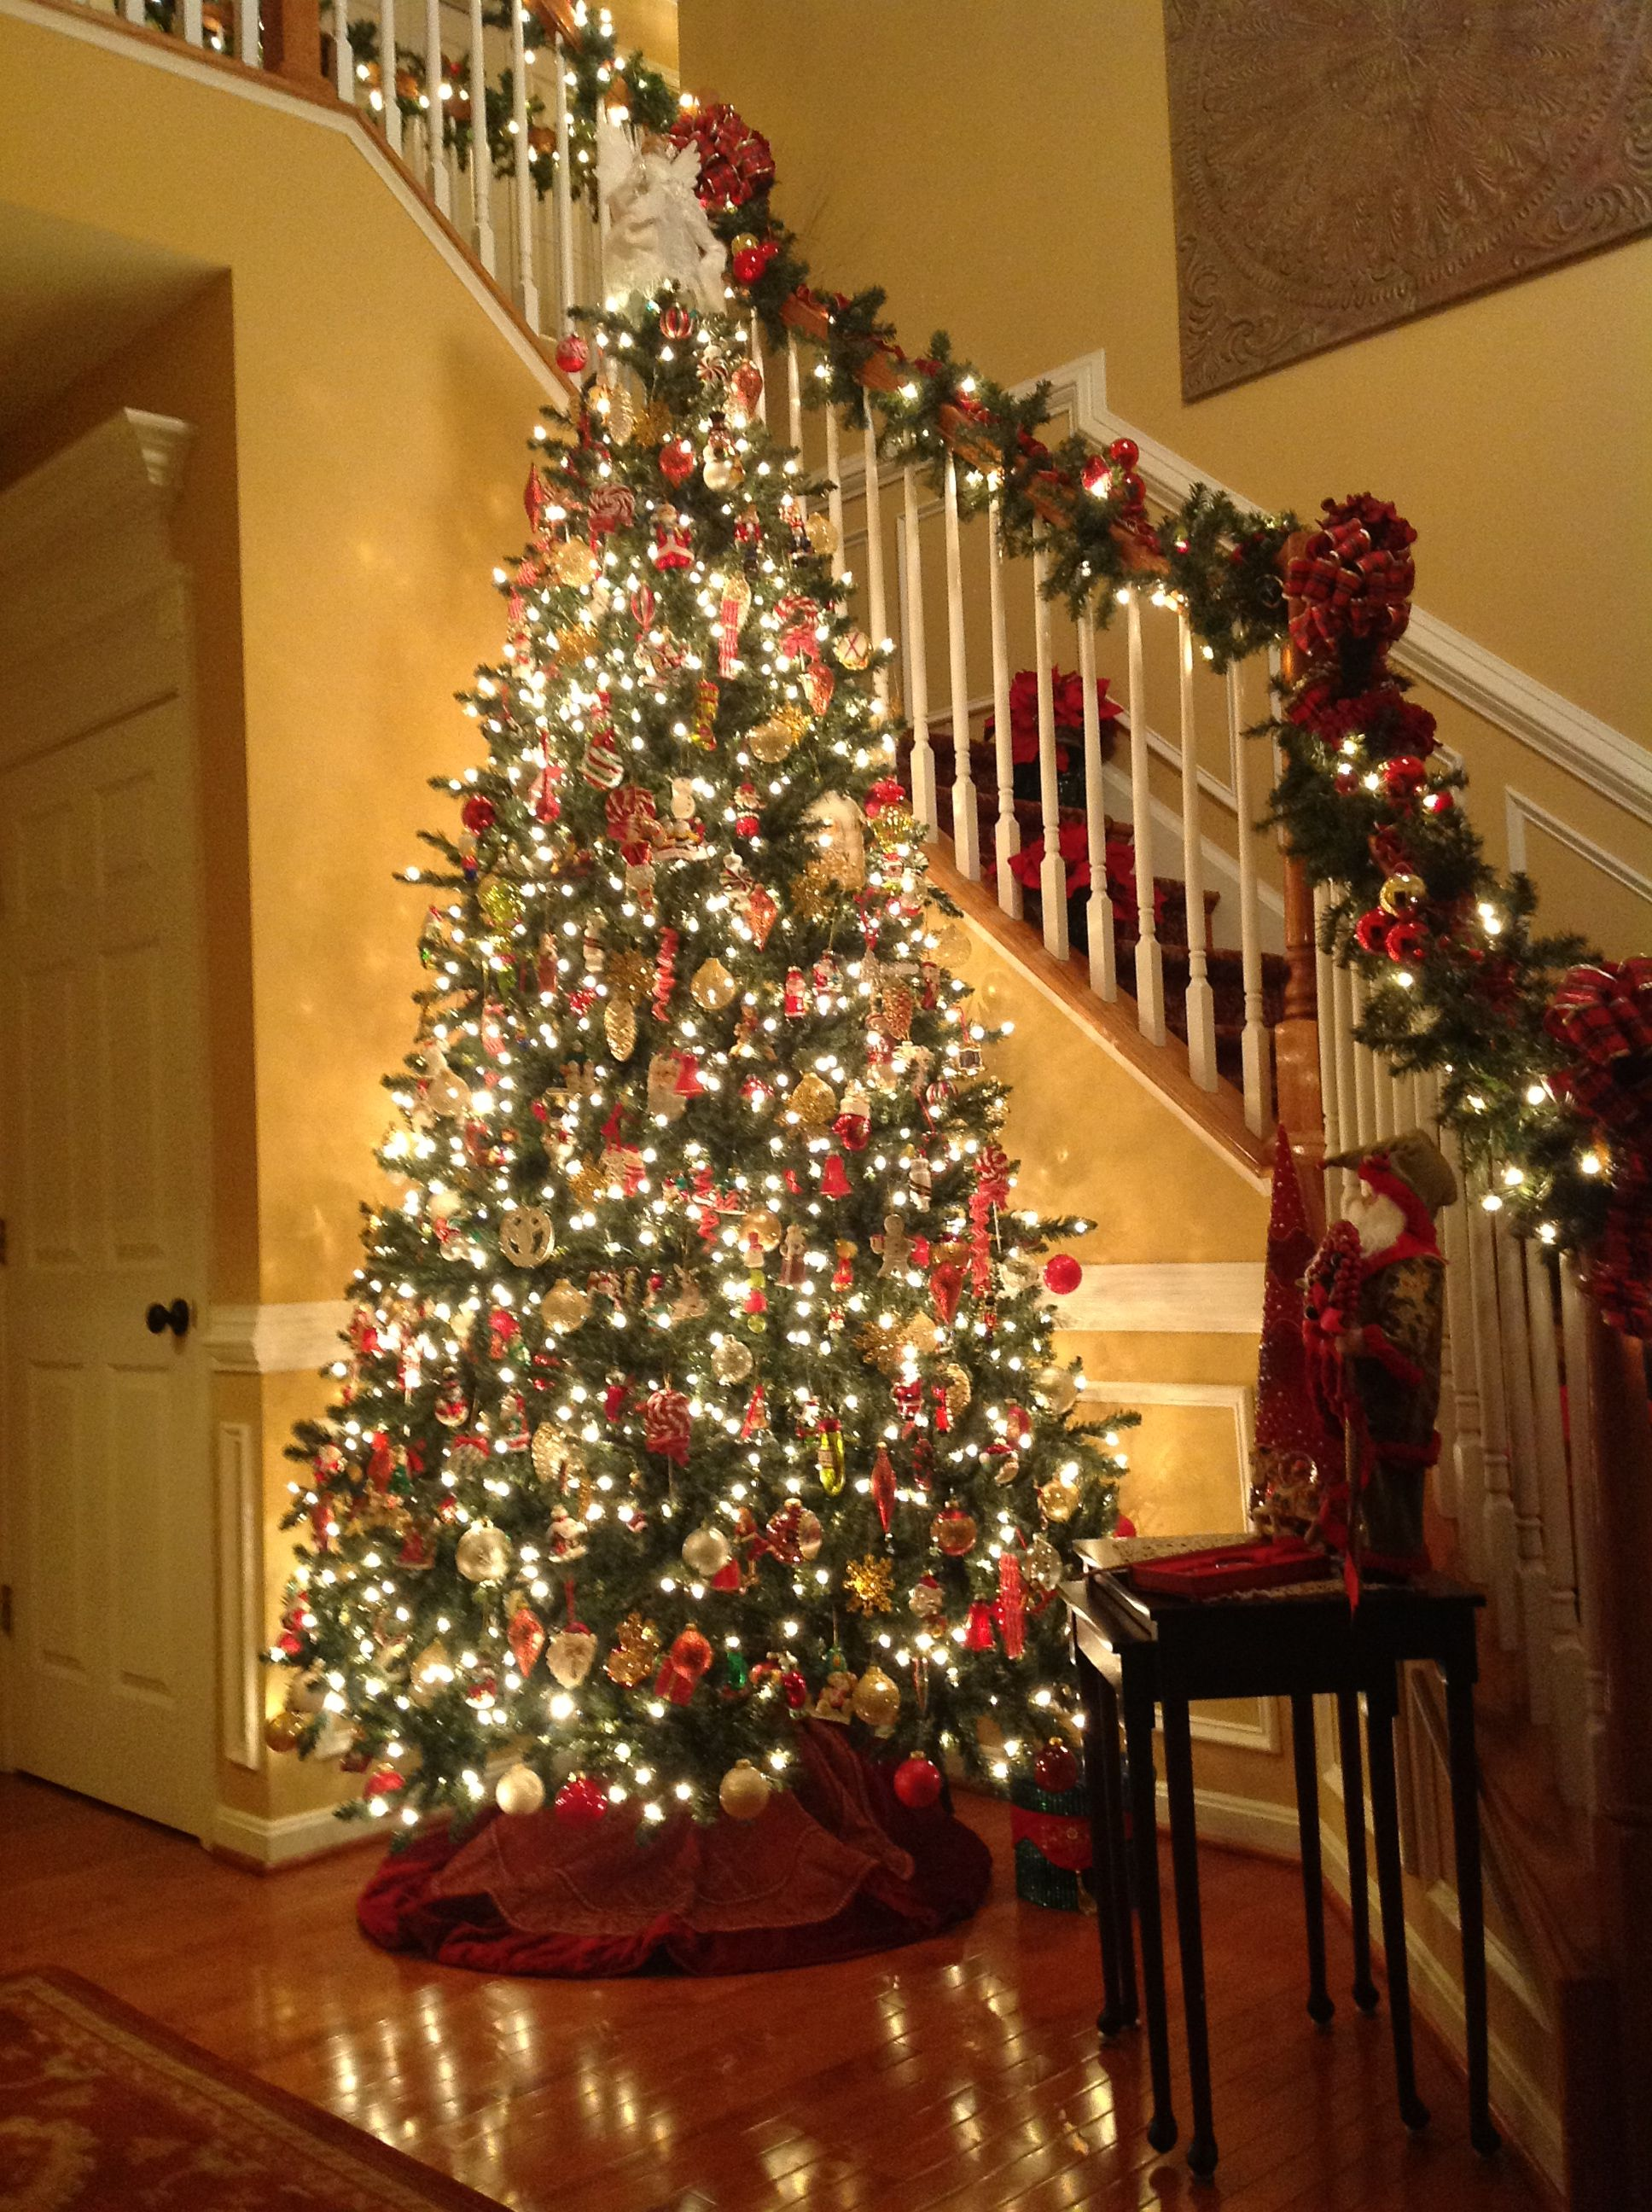 This Christmas Tree Stands 12 Feet Tall In Our Foyer And It Features Old Fashioned Hand Blown Ornaments T Christmas Tree Christmas Foyer 12 Ft Christmas Tree